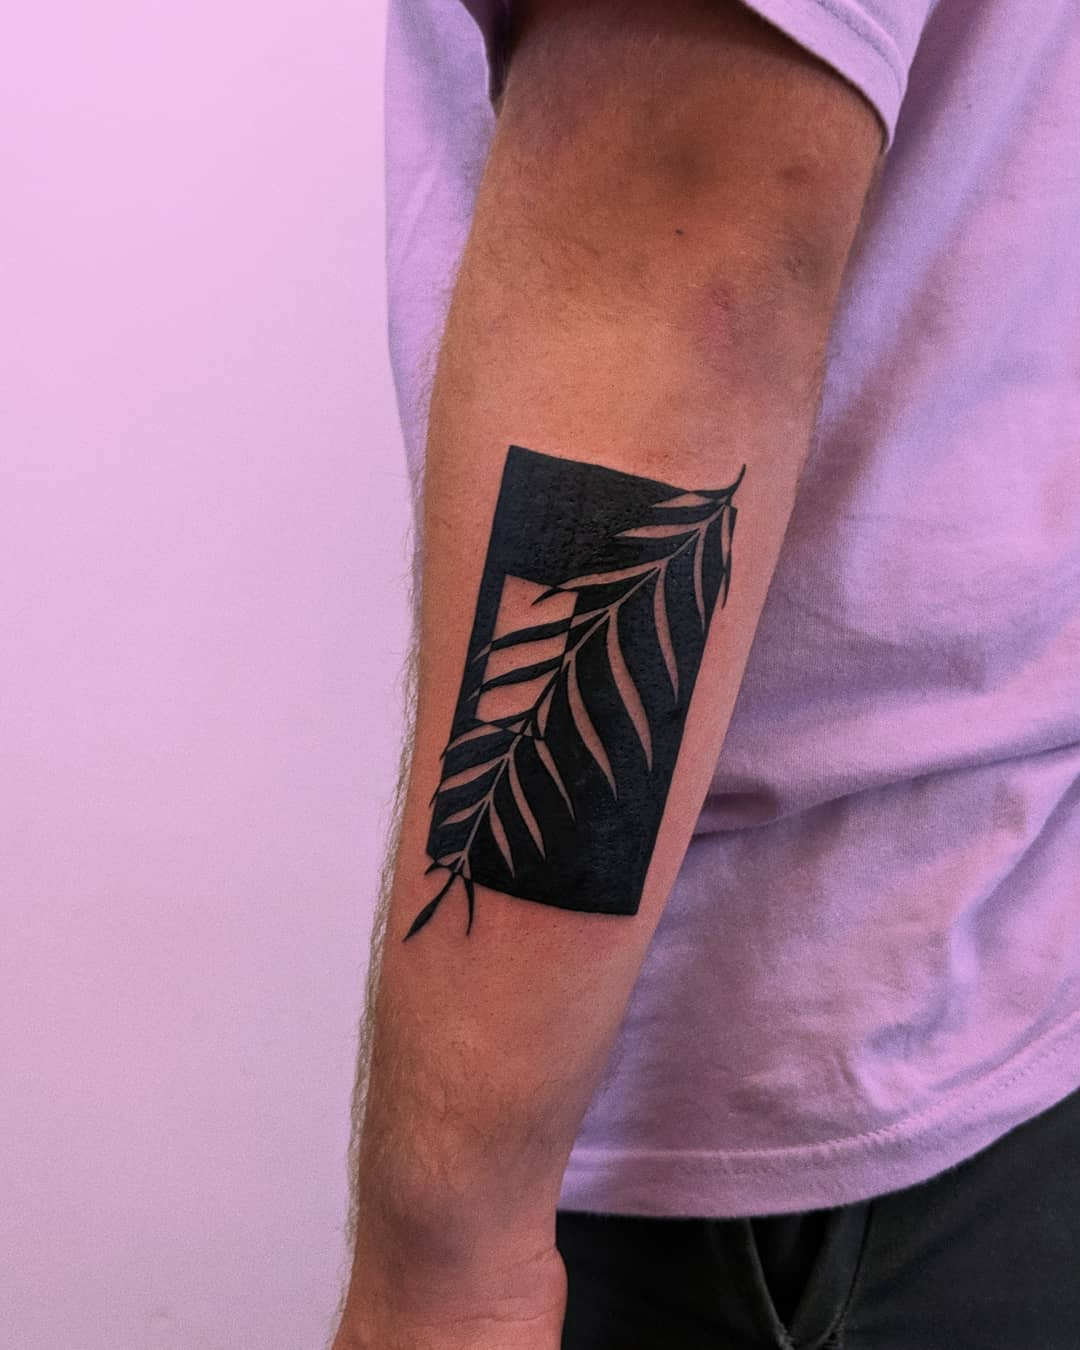 Negative space piece by Tristan Ritter